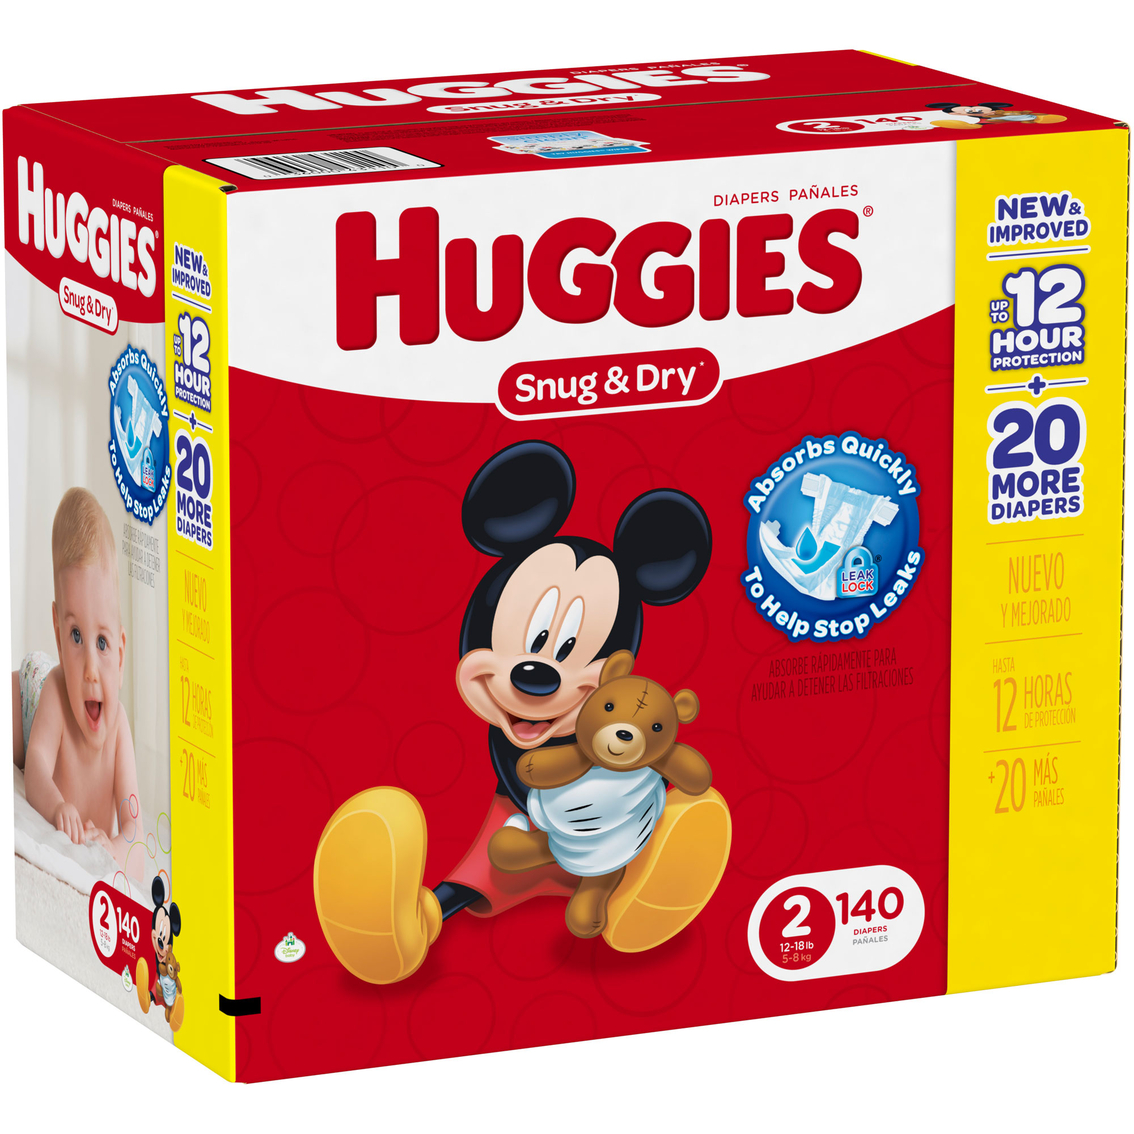 huggies diapers size 2   refill my phone straight talk